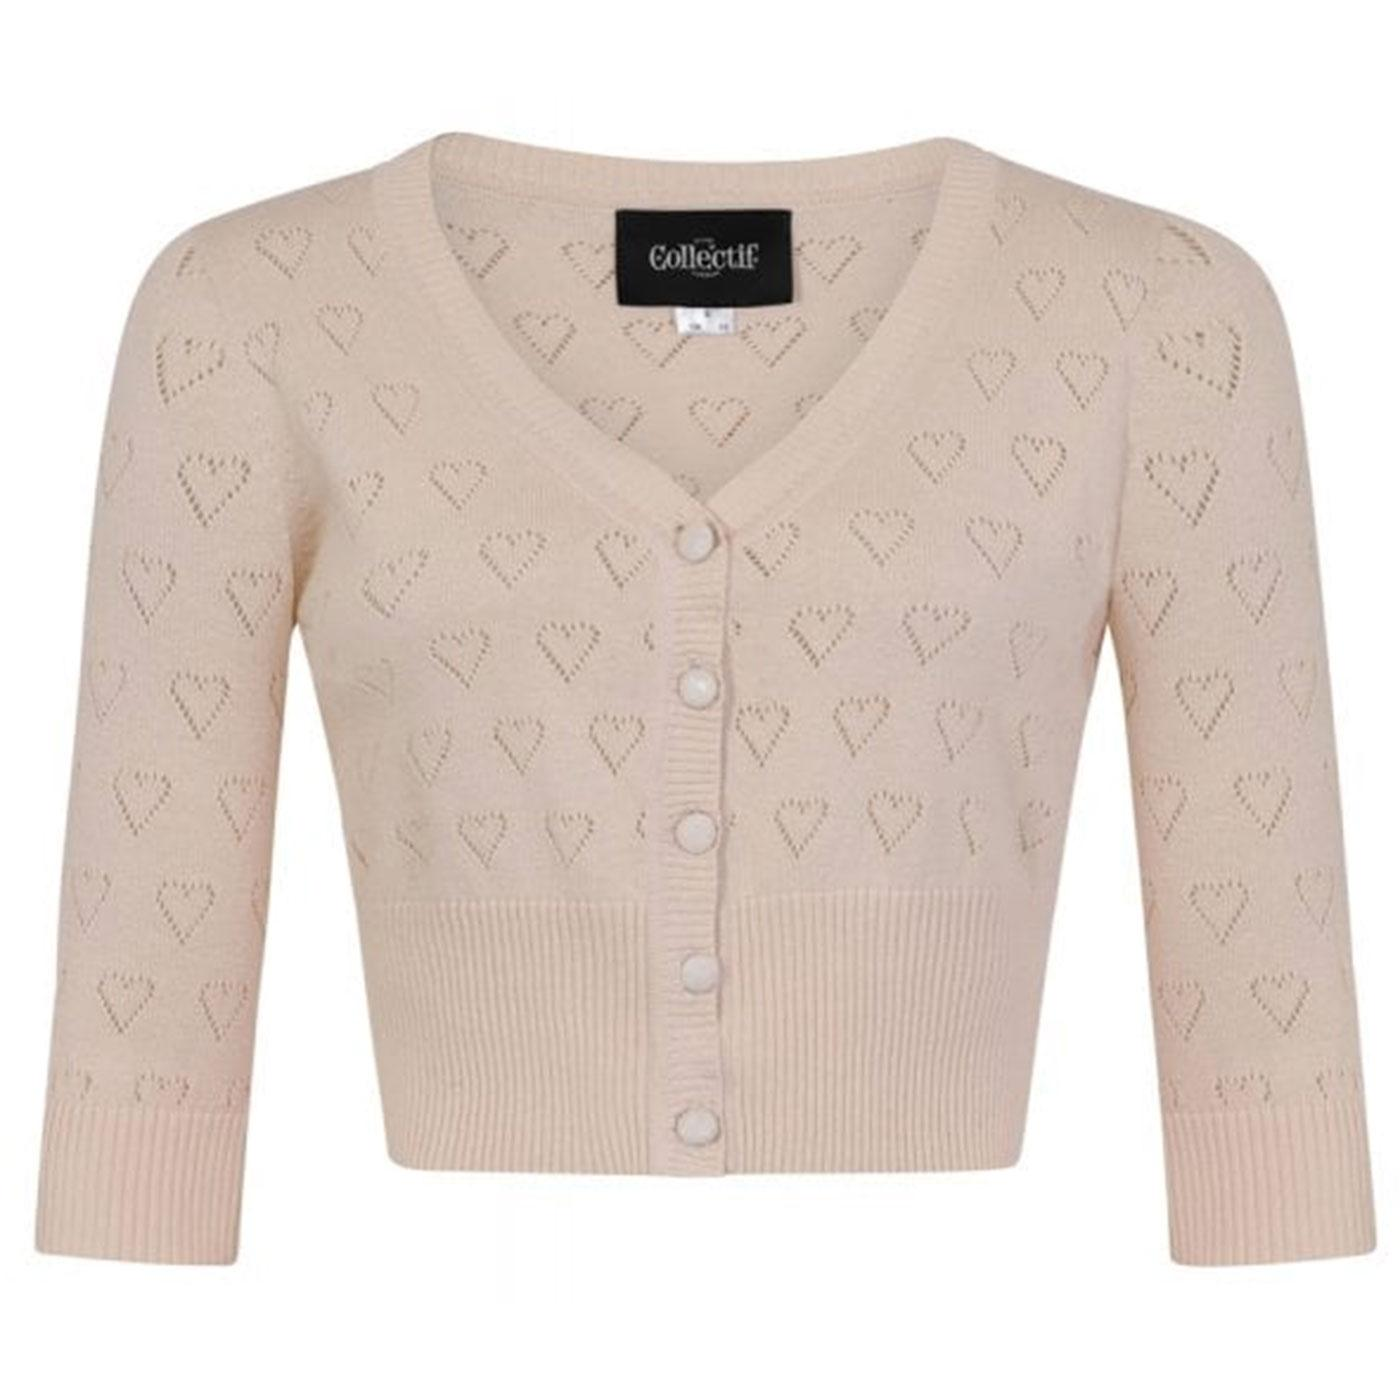 Evie COLLECTIF Retro 50s Heart Knit Cardigan Cream